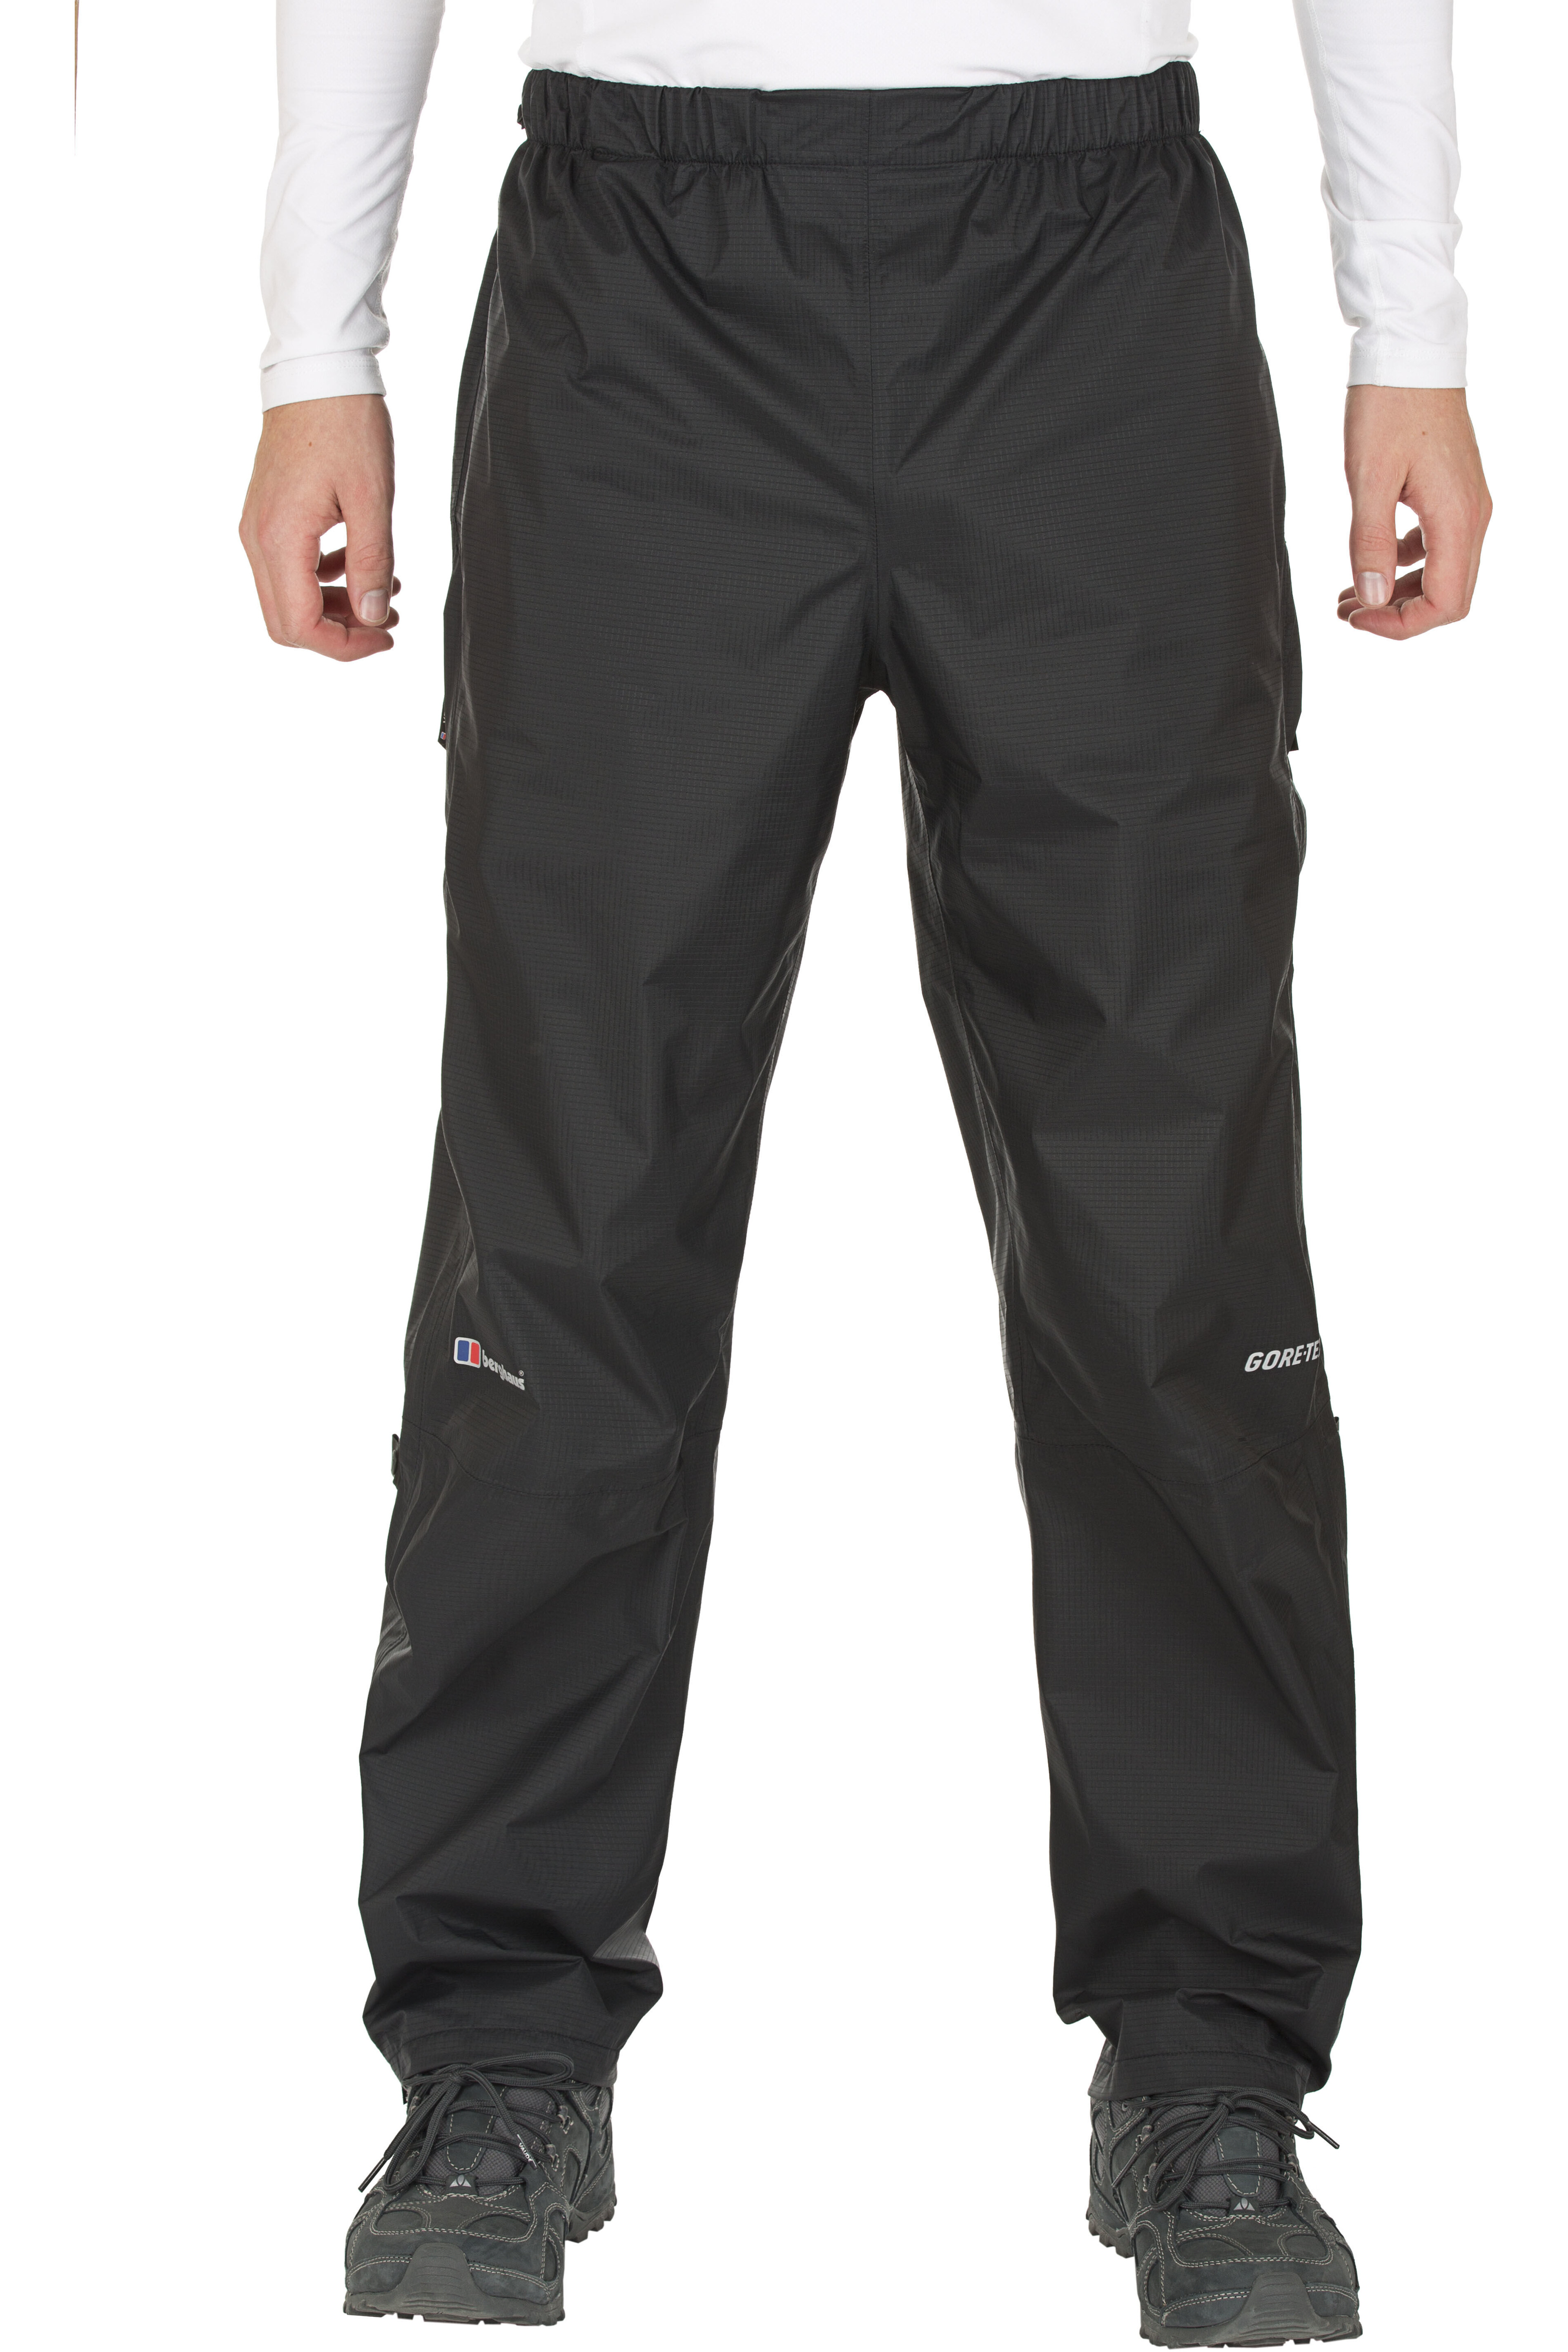 Berghaus Men's Deluge Overtrousers - YouTube